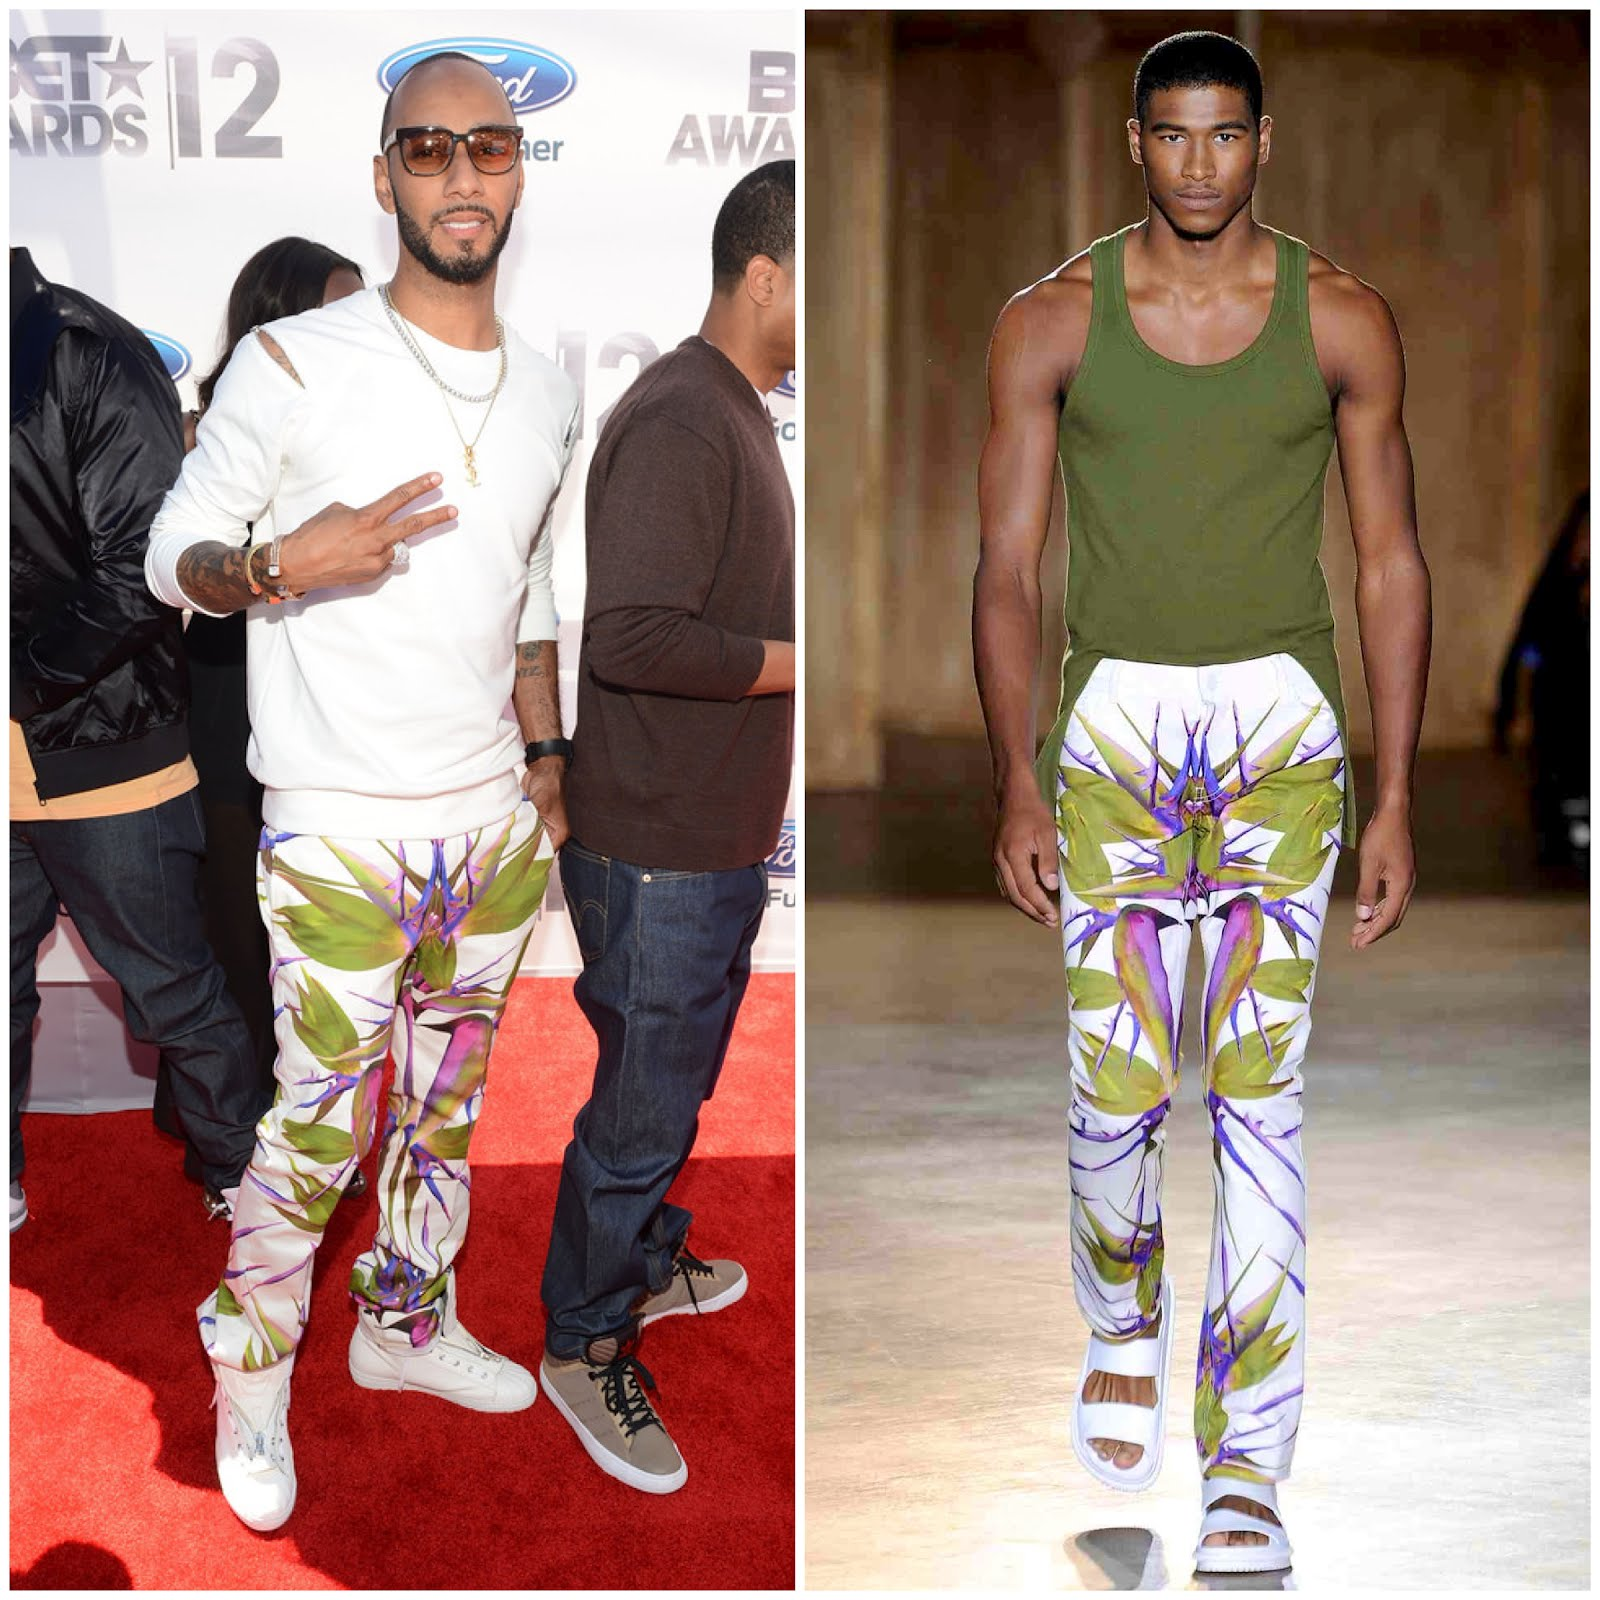 00o00 London Menswear Blogger Celebrity Style Swizz Beatz BET Awards 2012 Givenchy Mr Porter